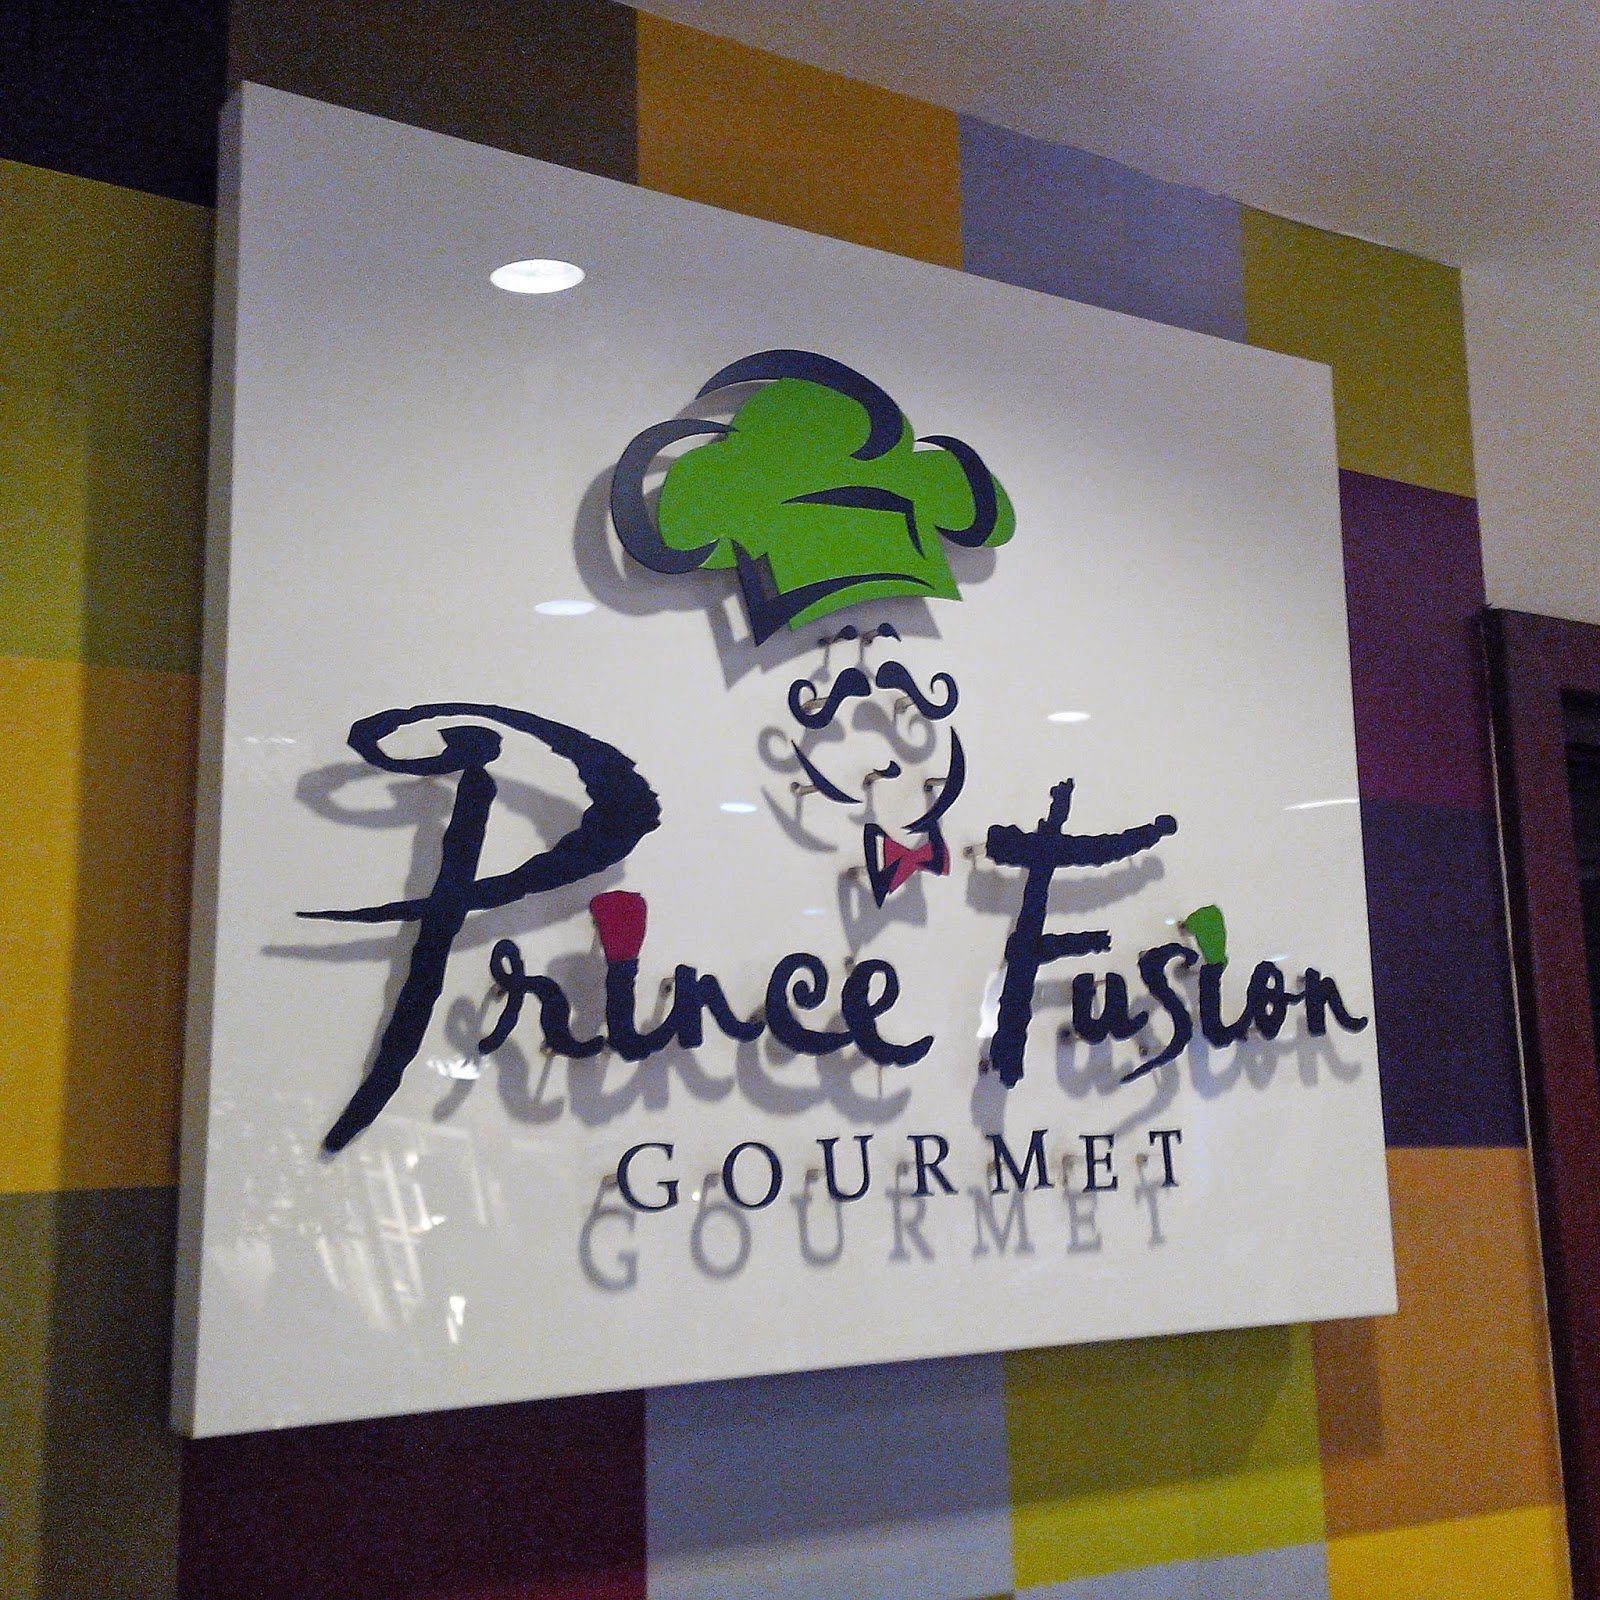 Prince Fushion Gourmet is located at the ground floor of Golden Prince Hotel, Acacia St. Cor. Archbishop Reyes Ave., Cebu City 6000